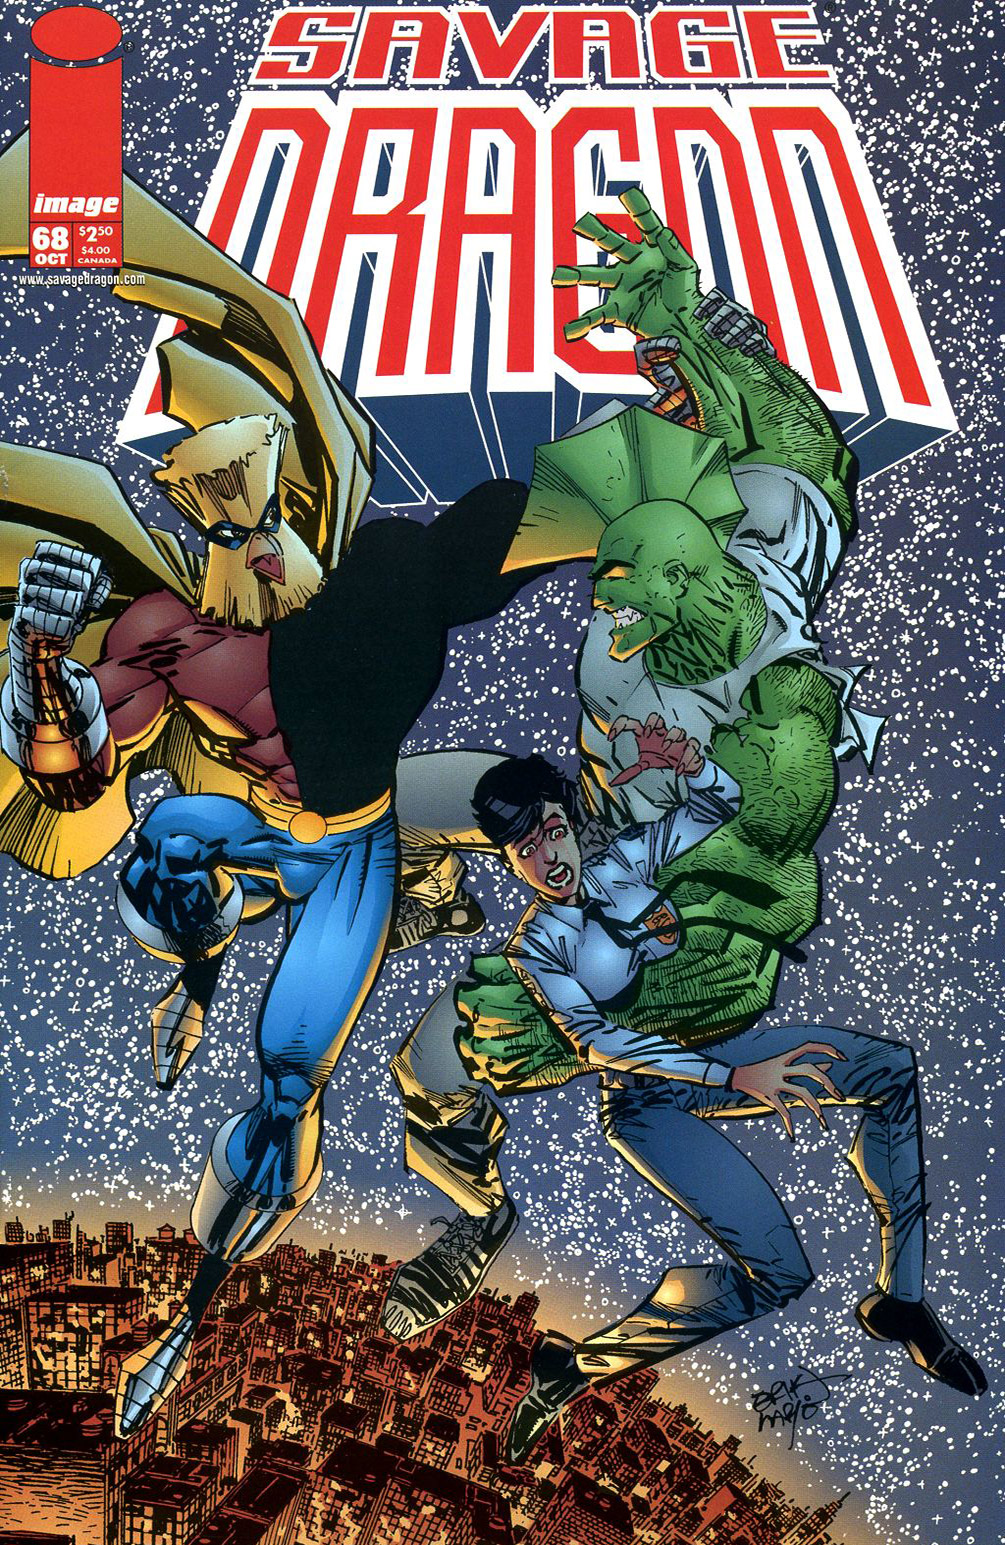 Cover Savage Dragon Vol.2 #68